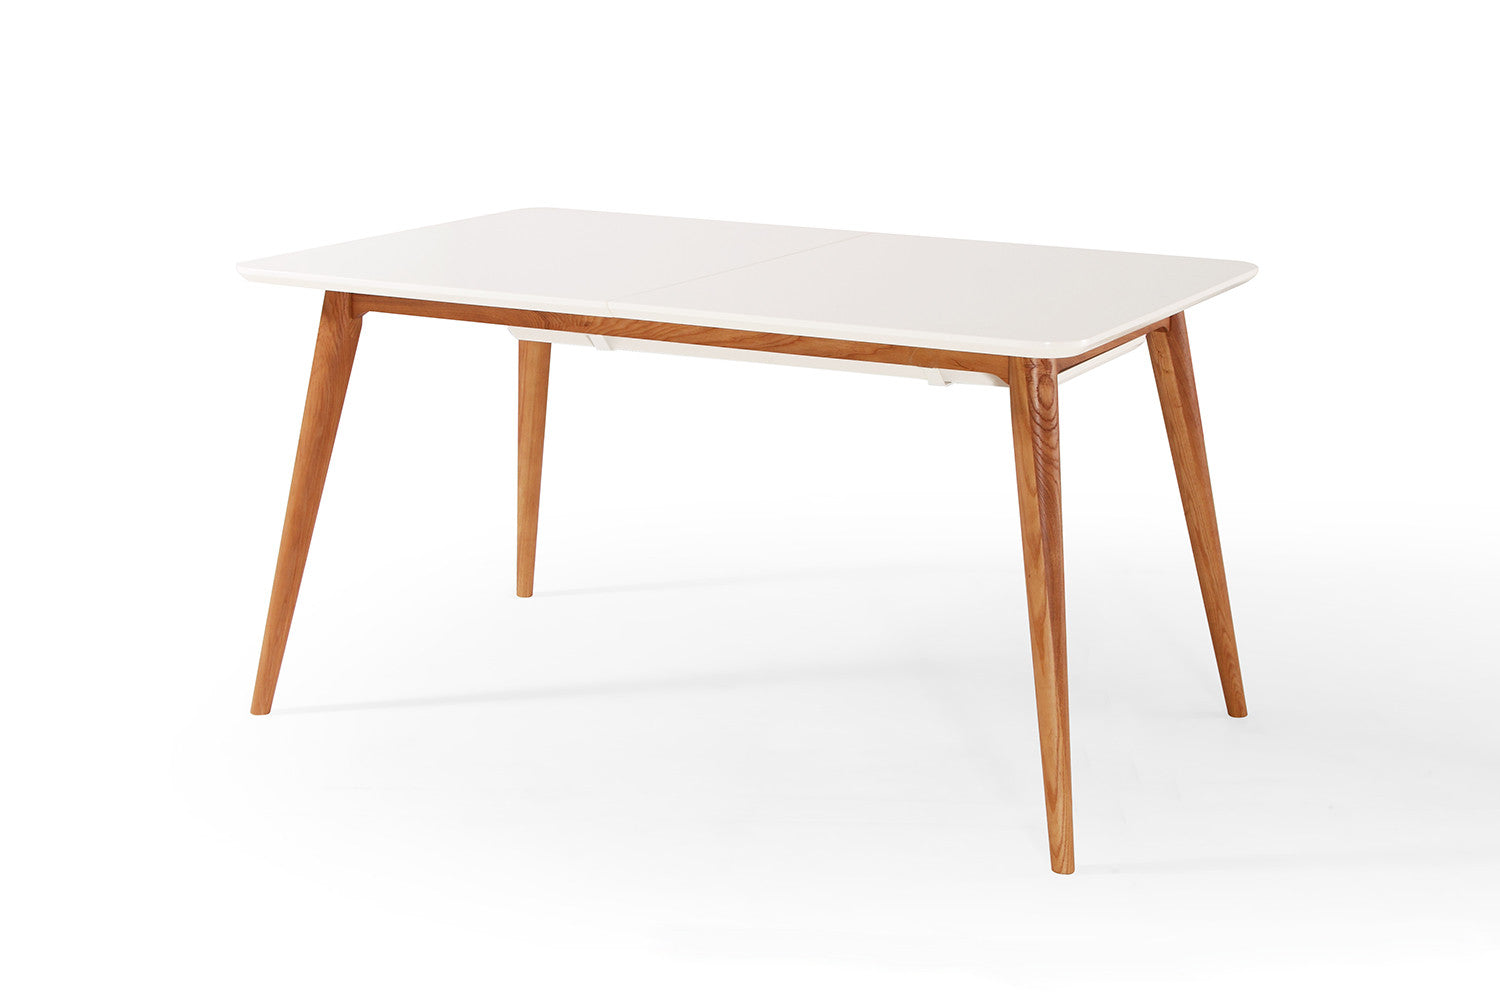 Table de salle manger extensible scandinave wyna dewarens for Table salle a manger rectangulaire extensible